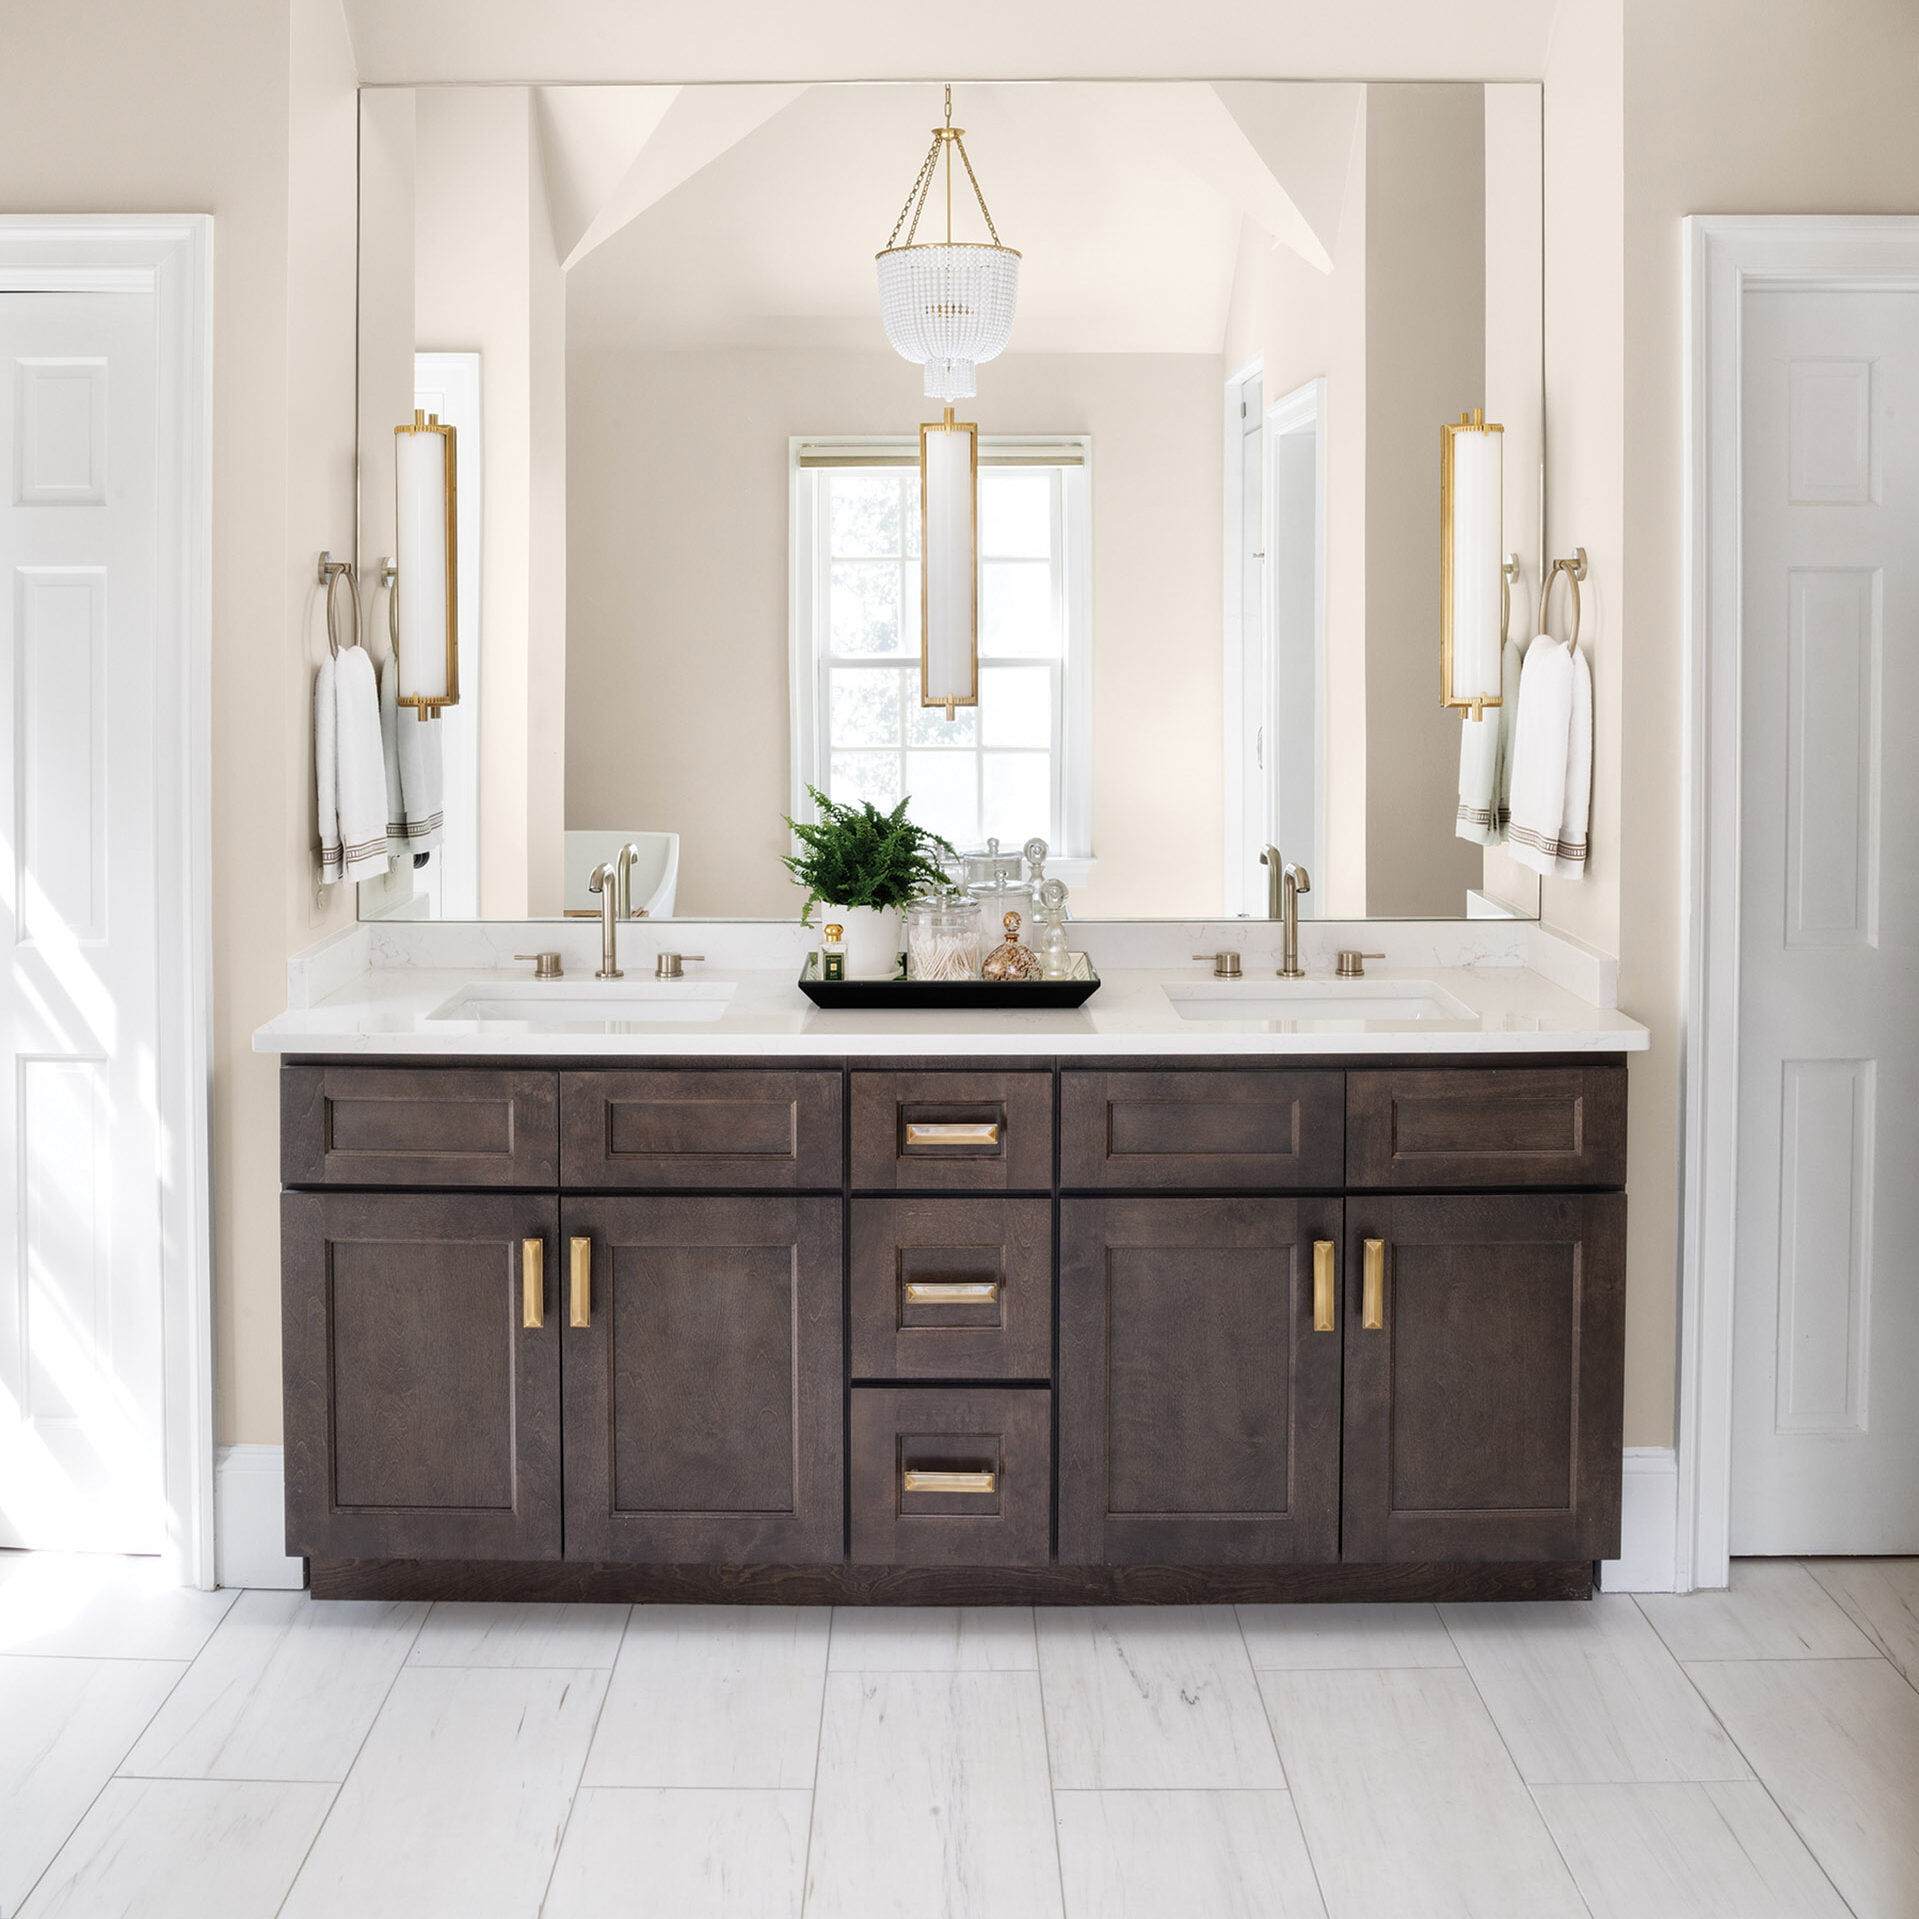 Dark-stained wood double vanity topped with quartz countertop.